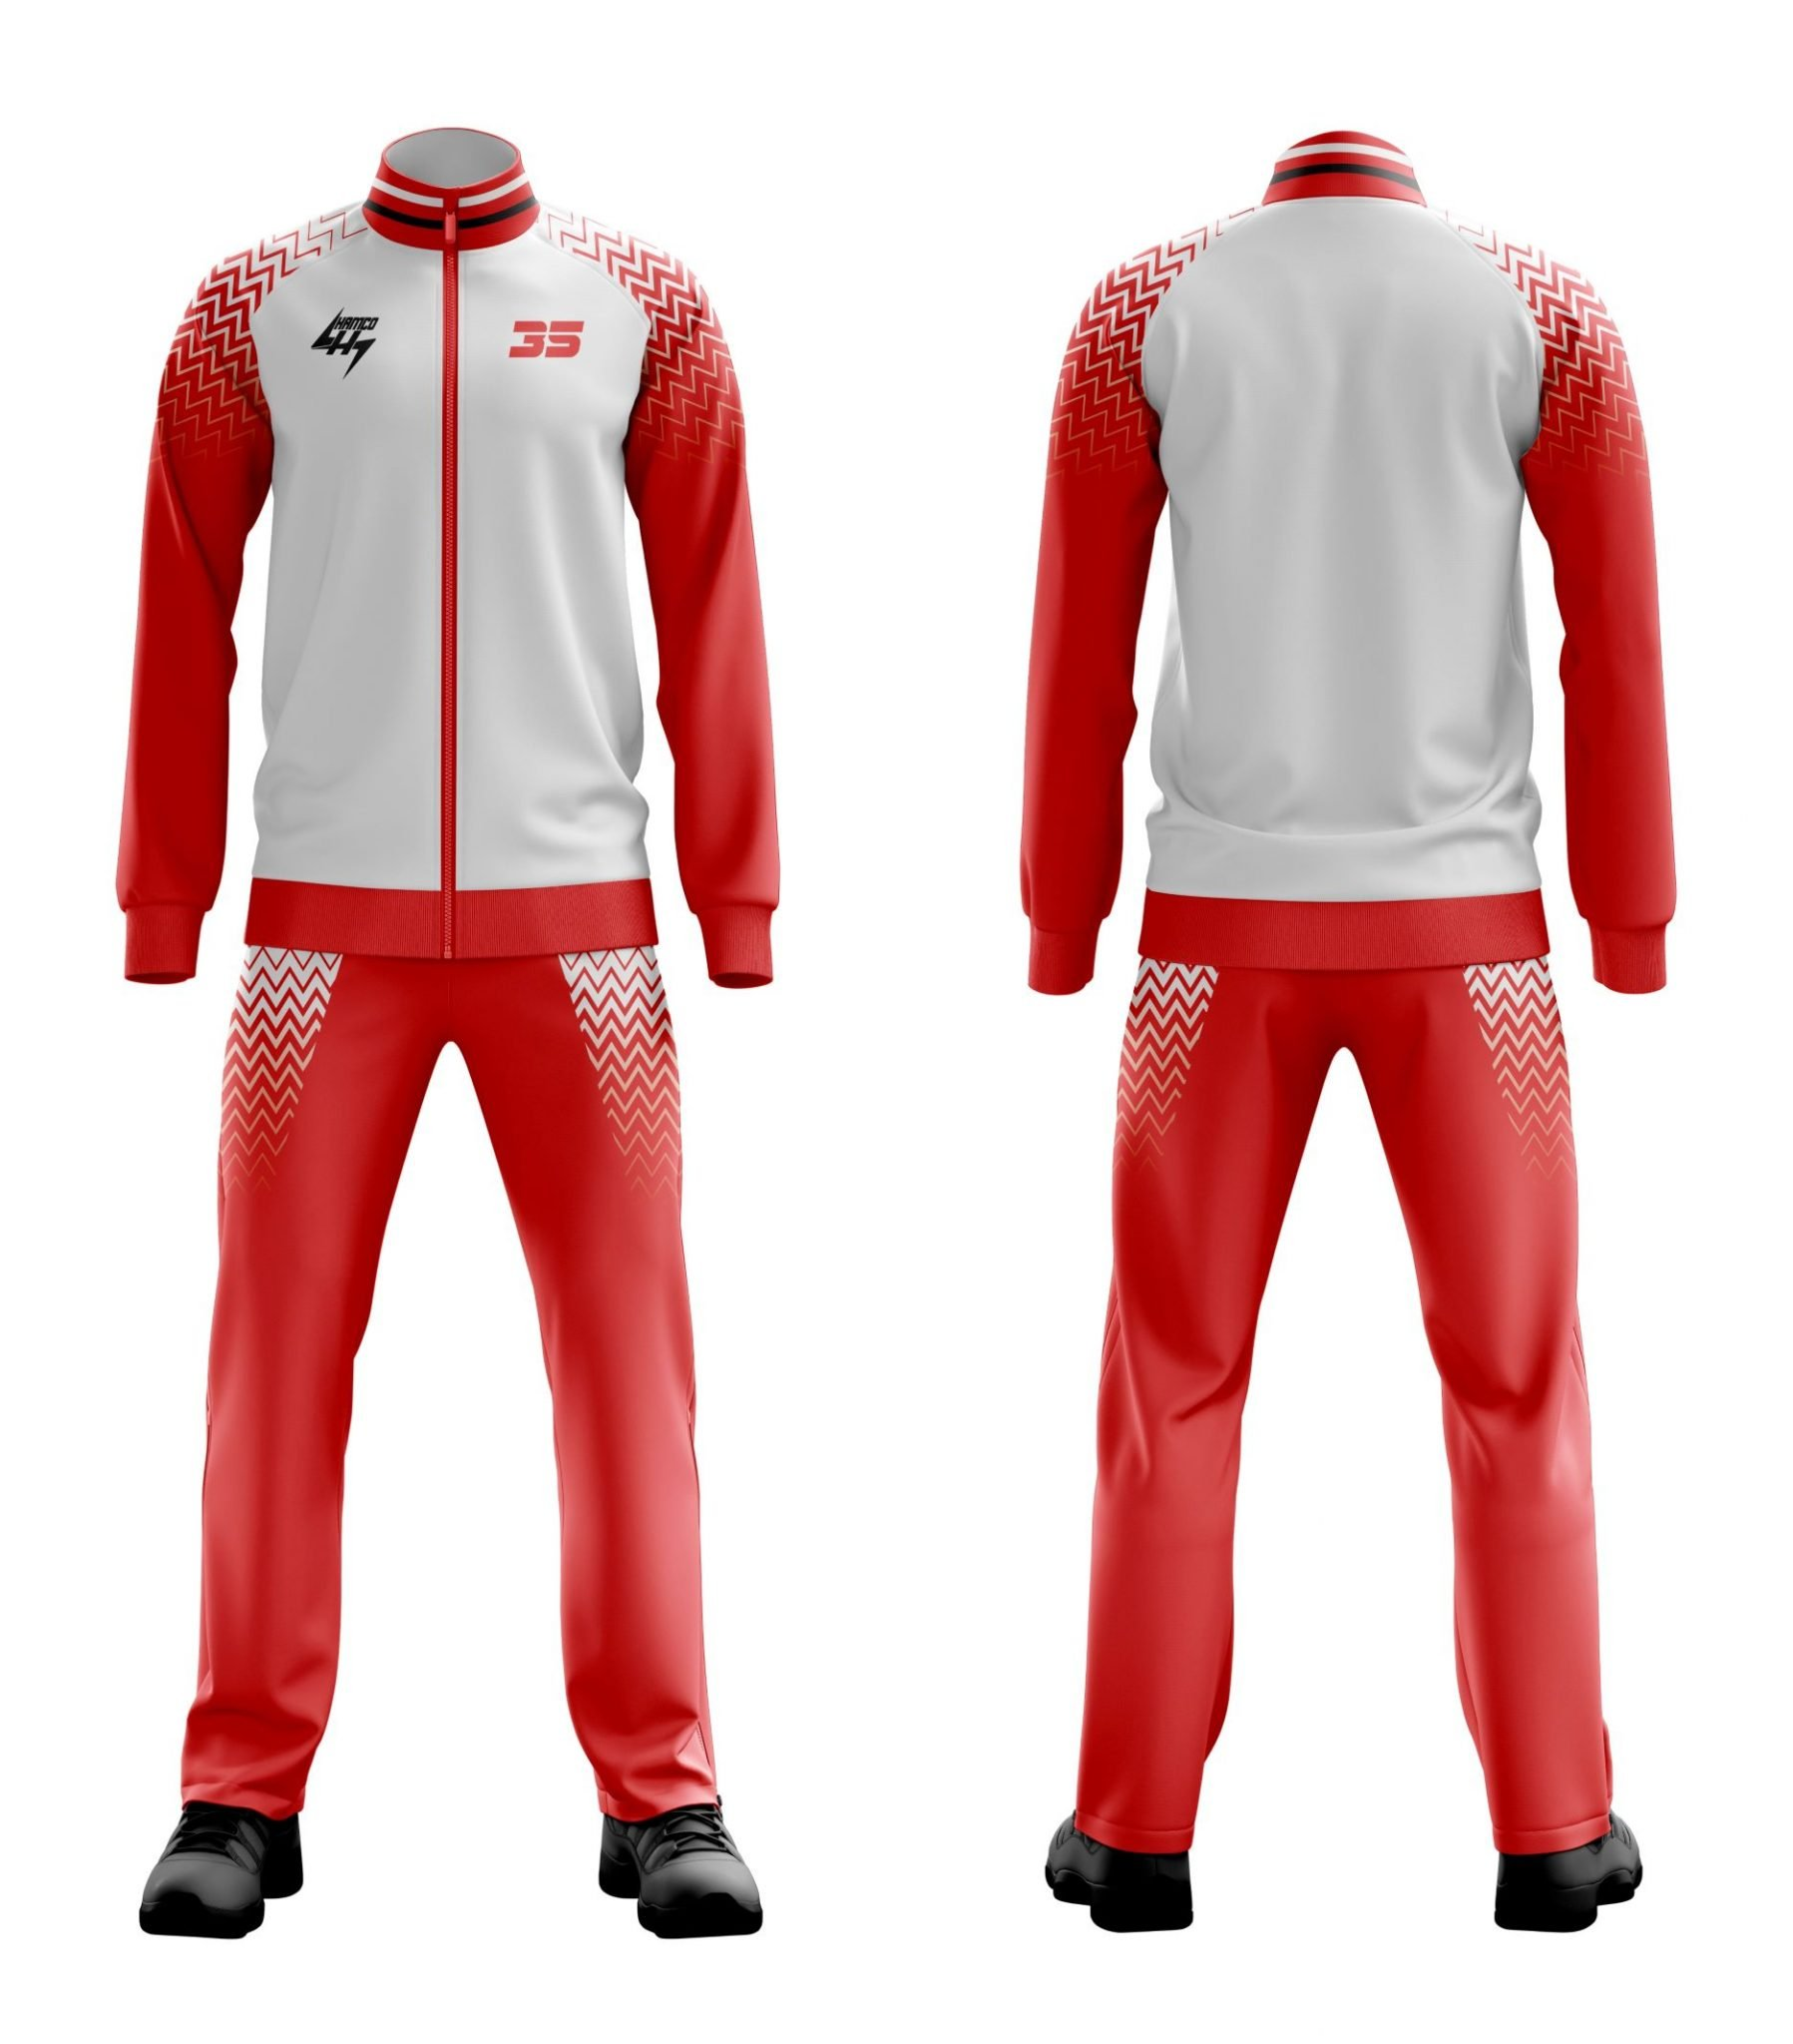 Custom Warm Up Uniform